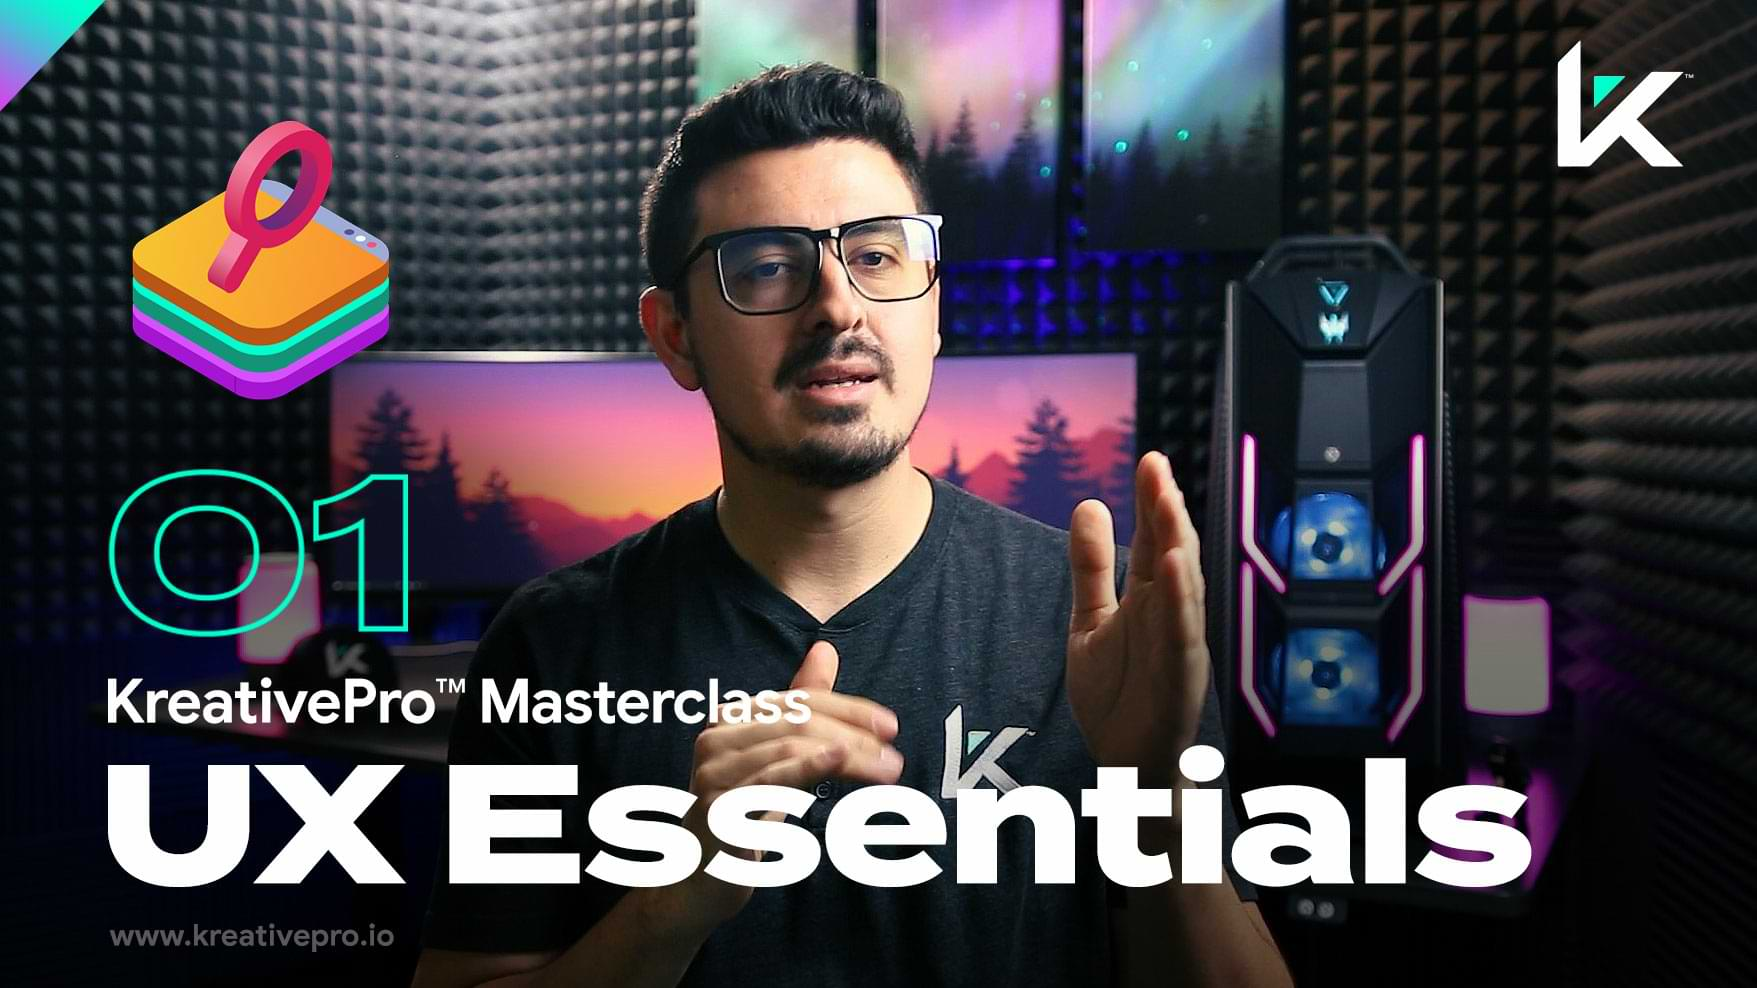 UX Essentials Course